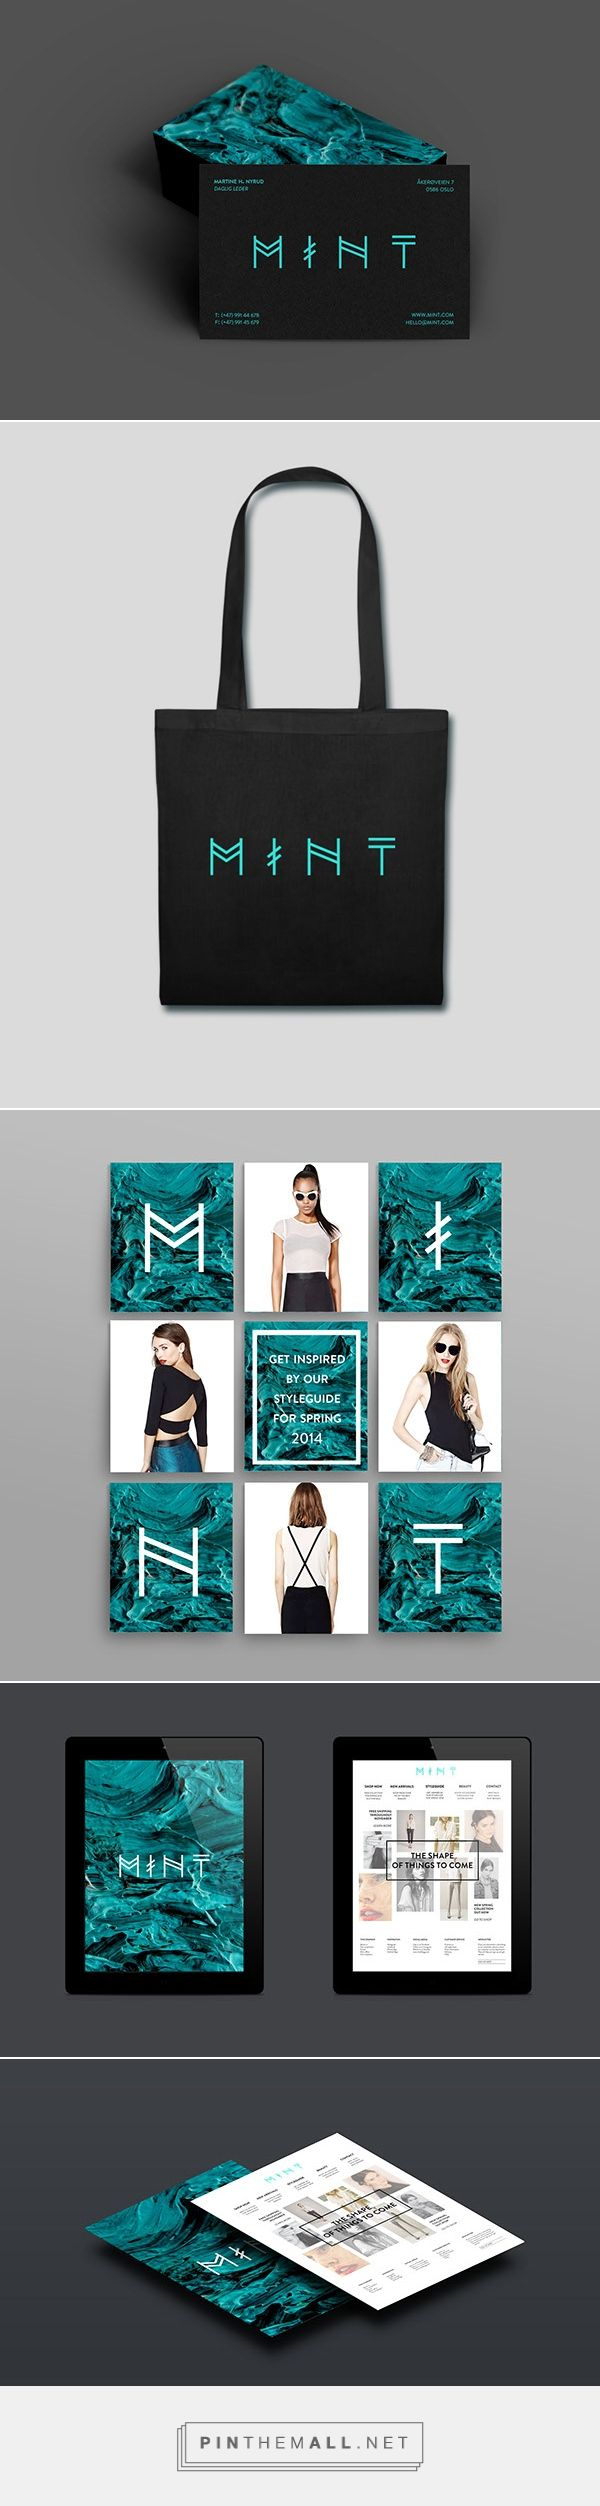 MINT Fashion Boutique Branding by Martine H. Nyrud | Fivestar Branding Agency – Design and Branding Agency & Curated Inspiration Gallery